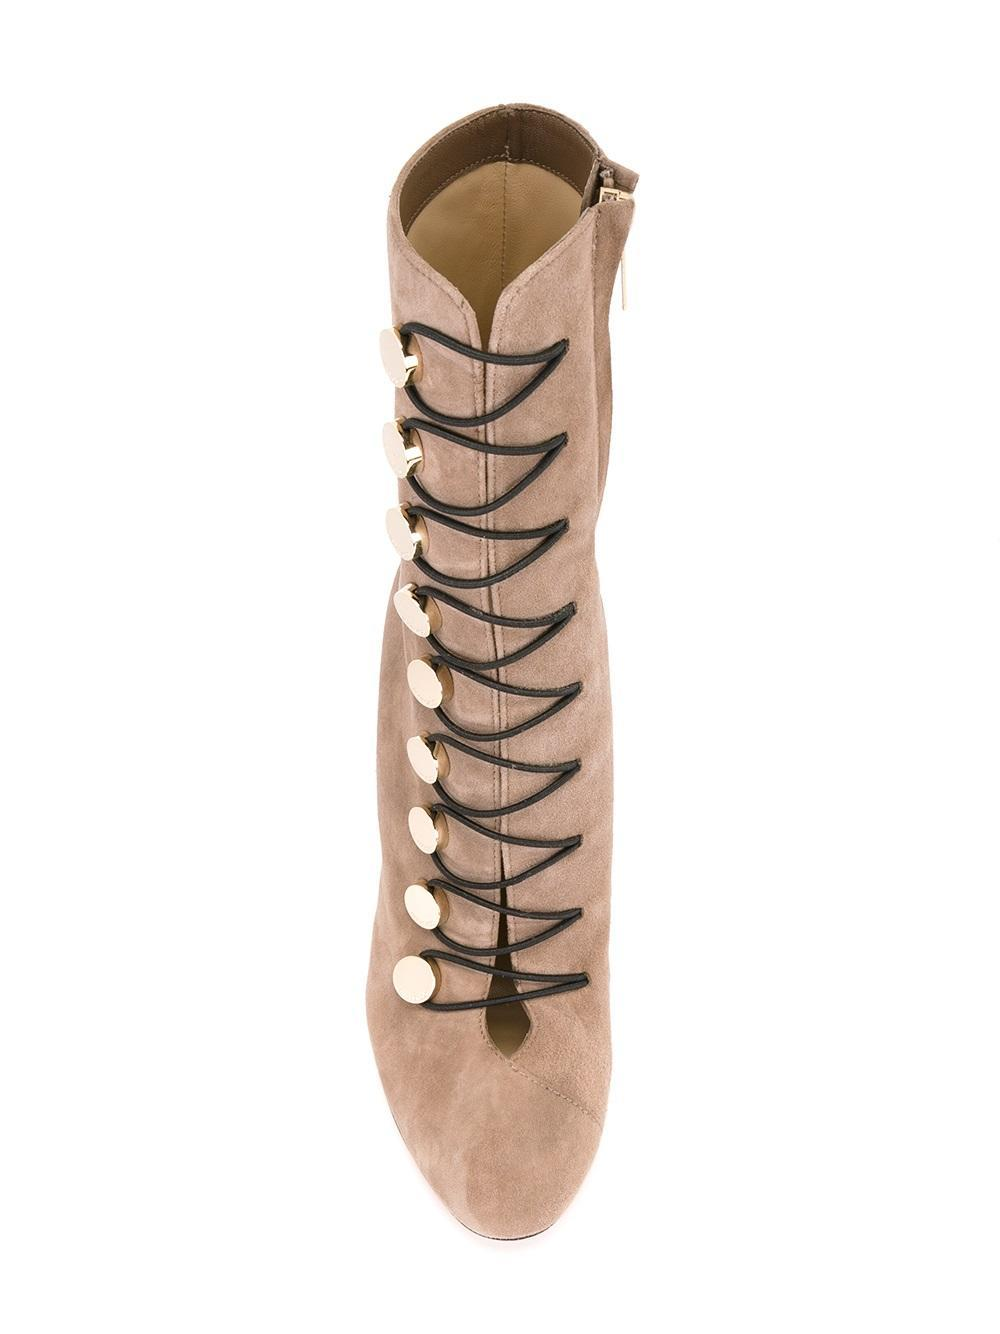 Jimmy Choo Leather Malta 100 Boots in Natural